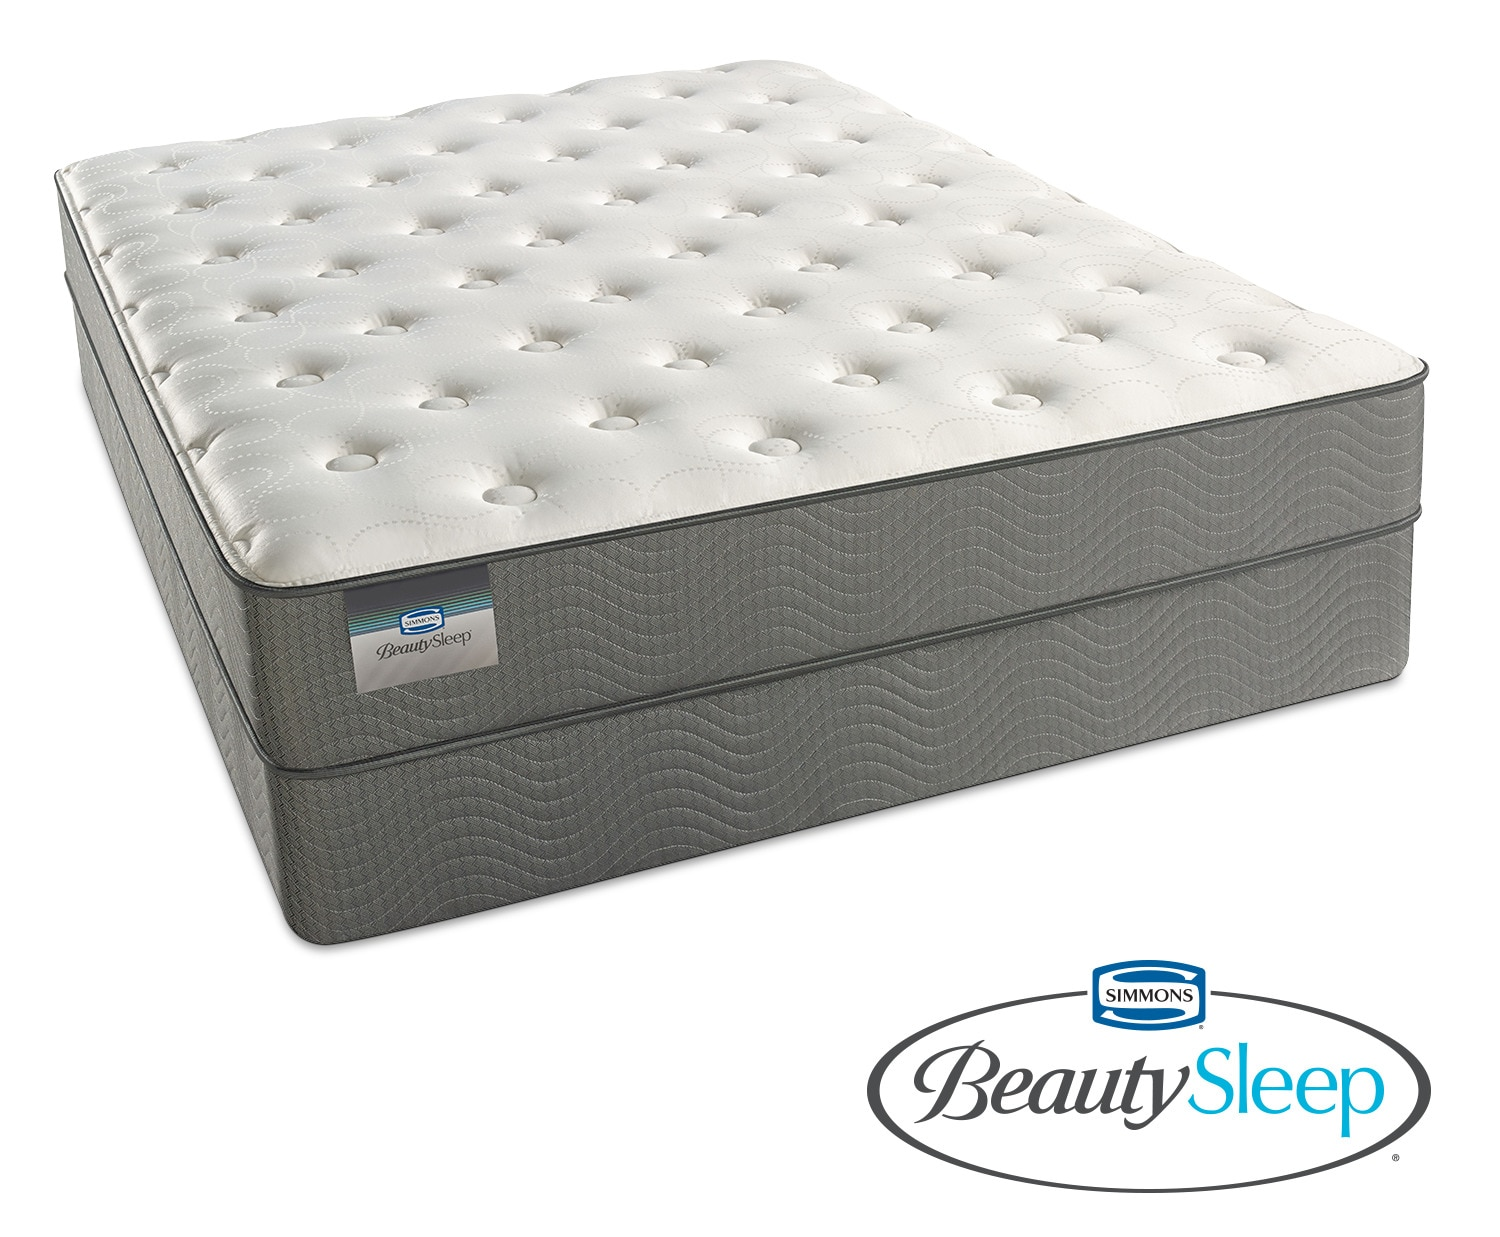 Mattresses and Bedding - Sapphire Blue Luxury Firm Full Mattress and Low-Profile Foundation Set